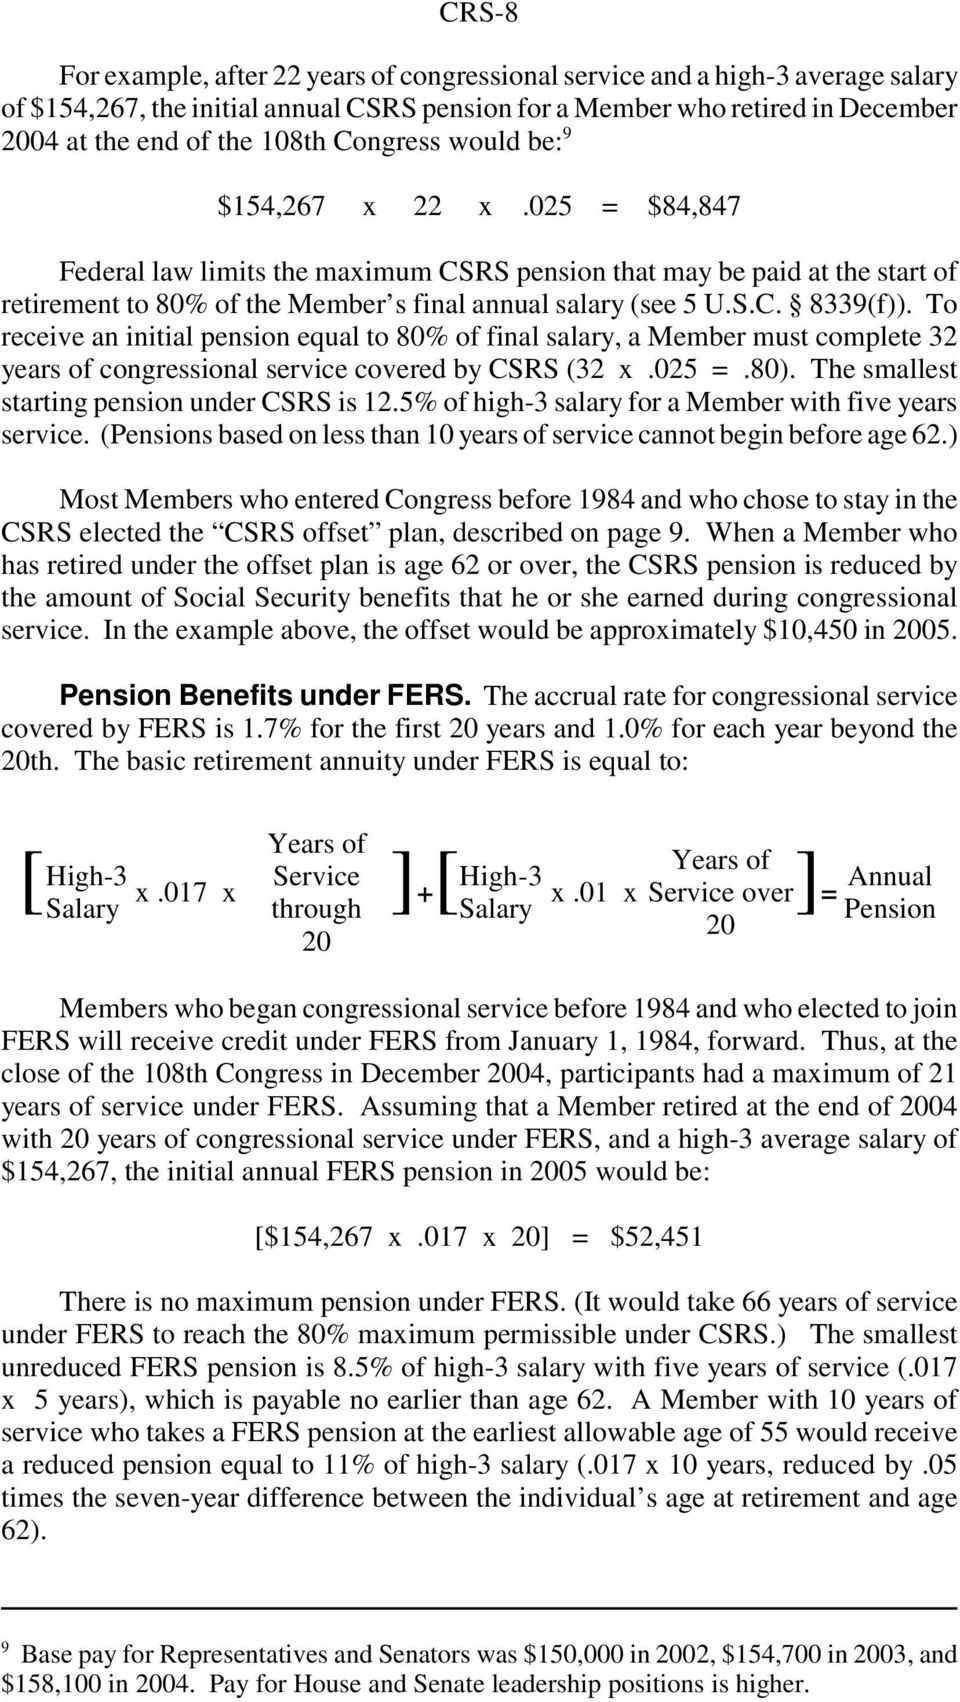 To receive an initial pension equal to 80% of final salary, a Member must complete 32 years of congressional service covered by CSRS (32 x.025 =.80). The smallest starting pension under CSRS is 12.